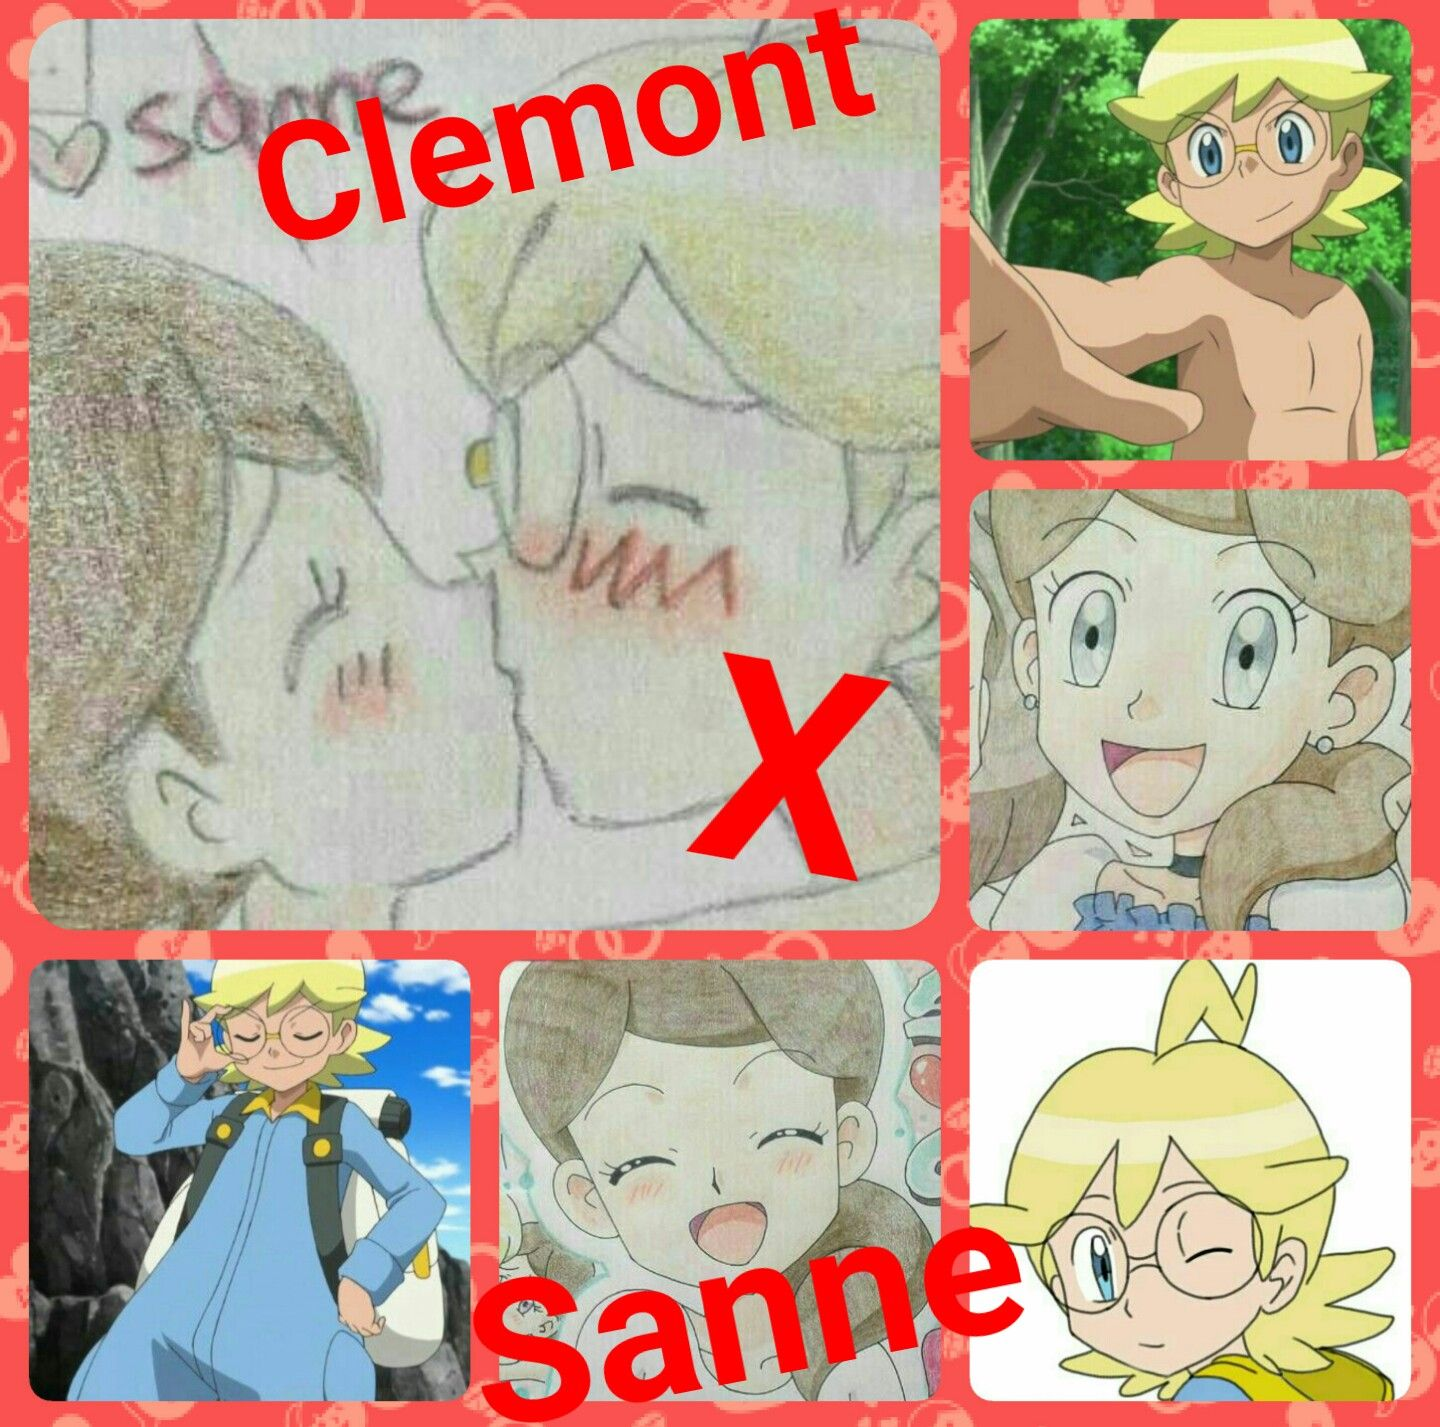 anothet clemont x sanne college by kaitlyn f also anothet clemont x sanne college by kaitlyn f also if you like